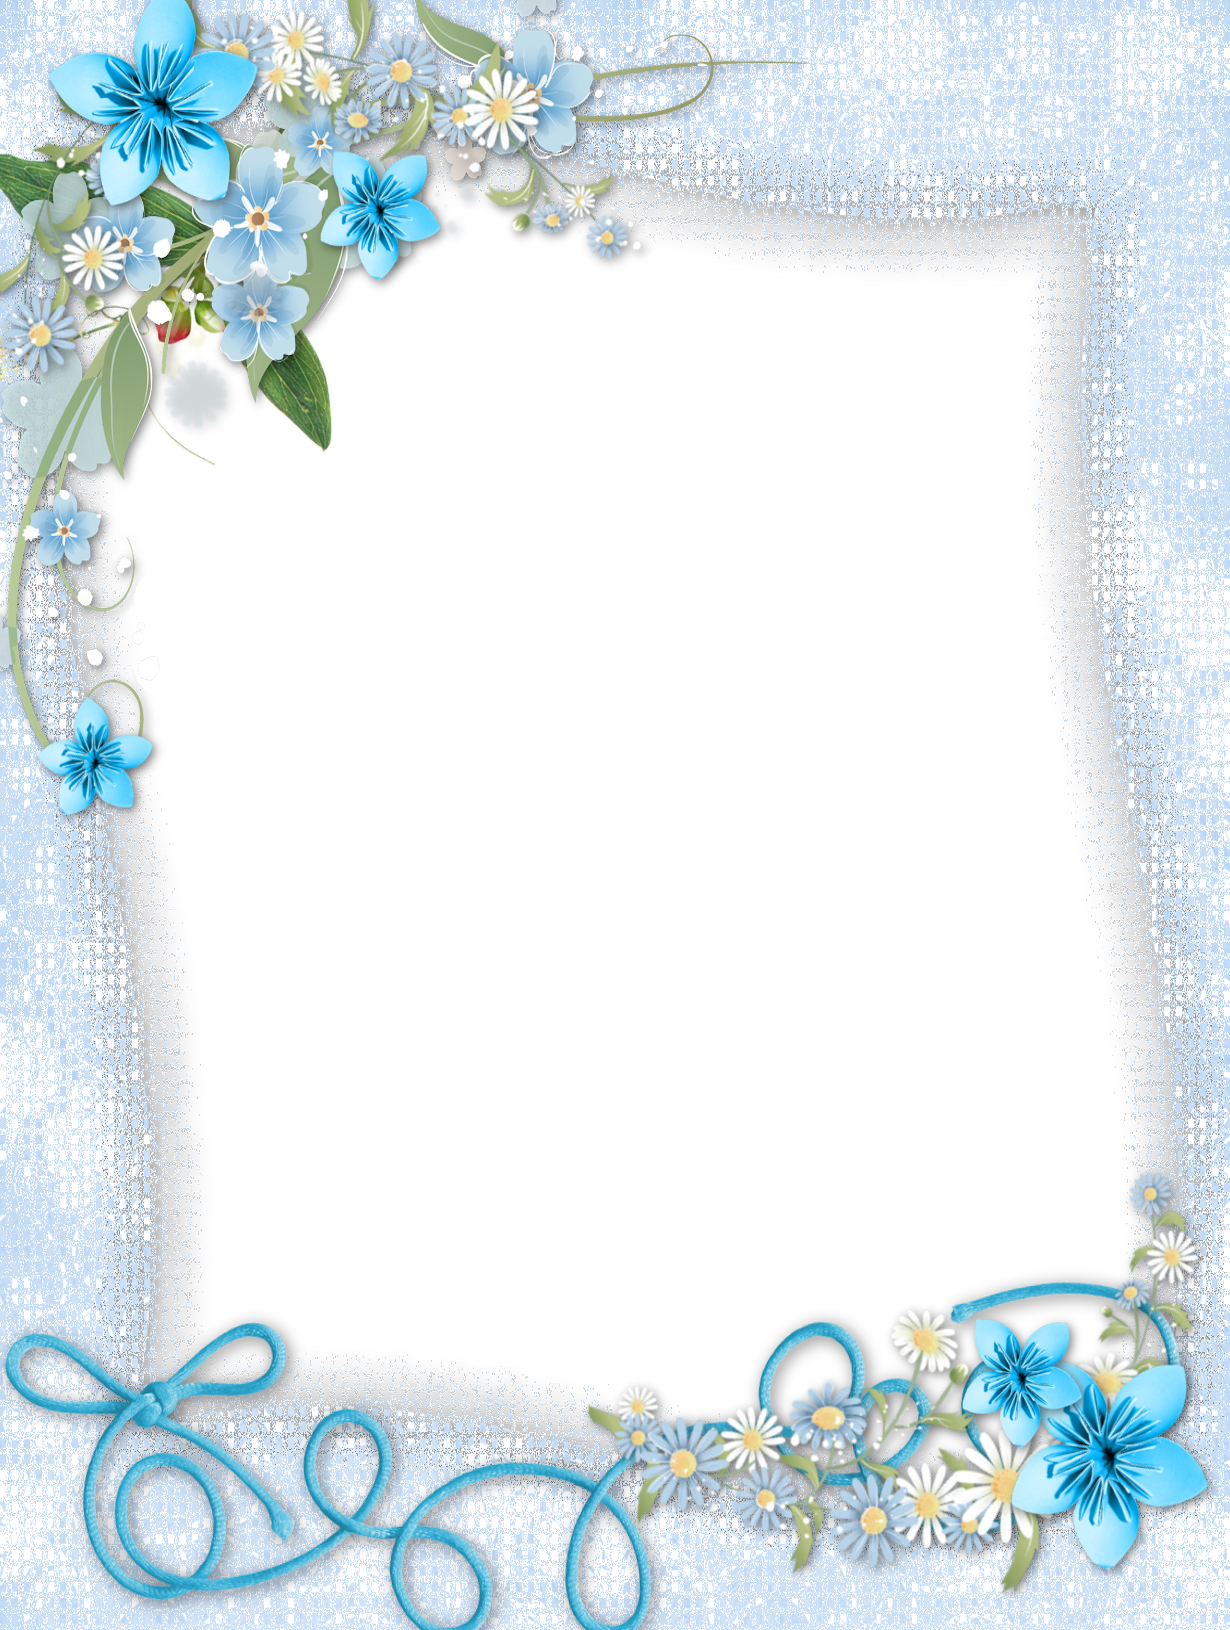 Blue flower border clipart graphic free stock Transparent Blue PNG Frame with Flowers | Frames | Pinterest ... graphic free stock